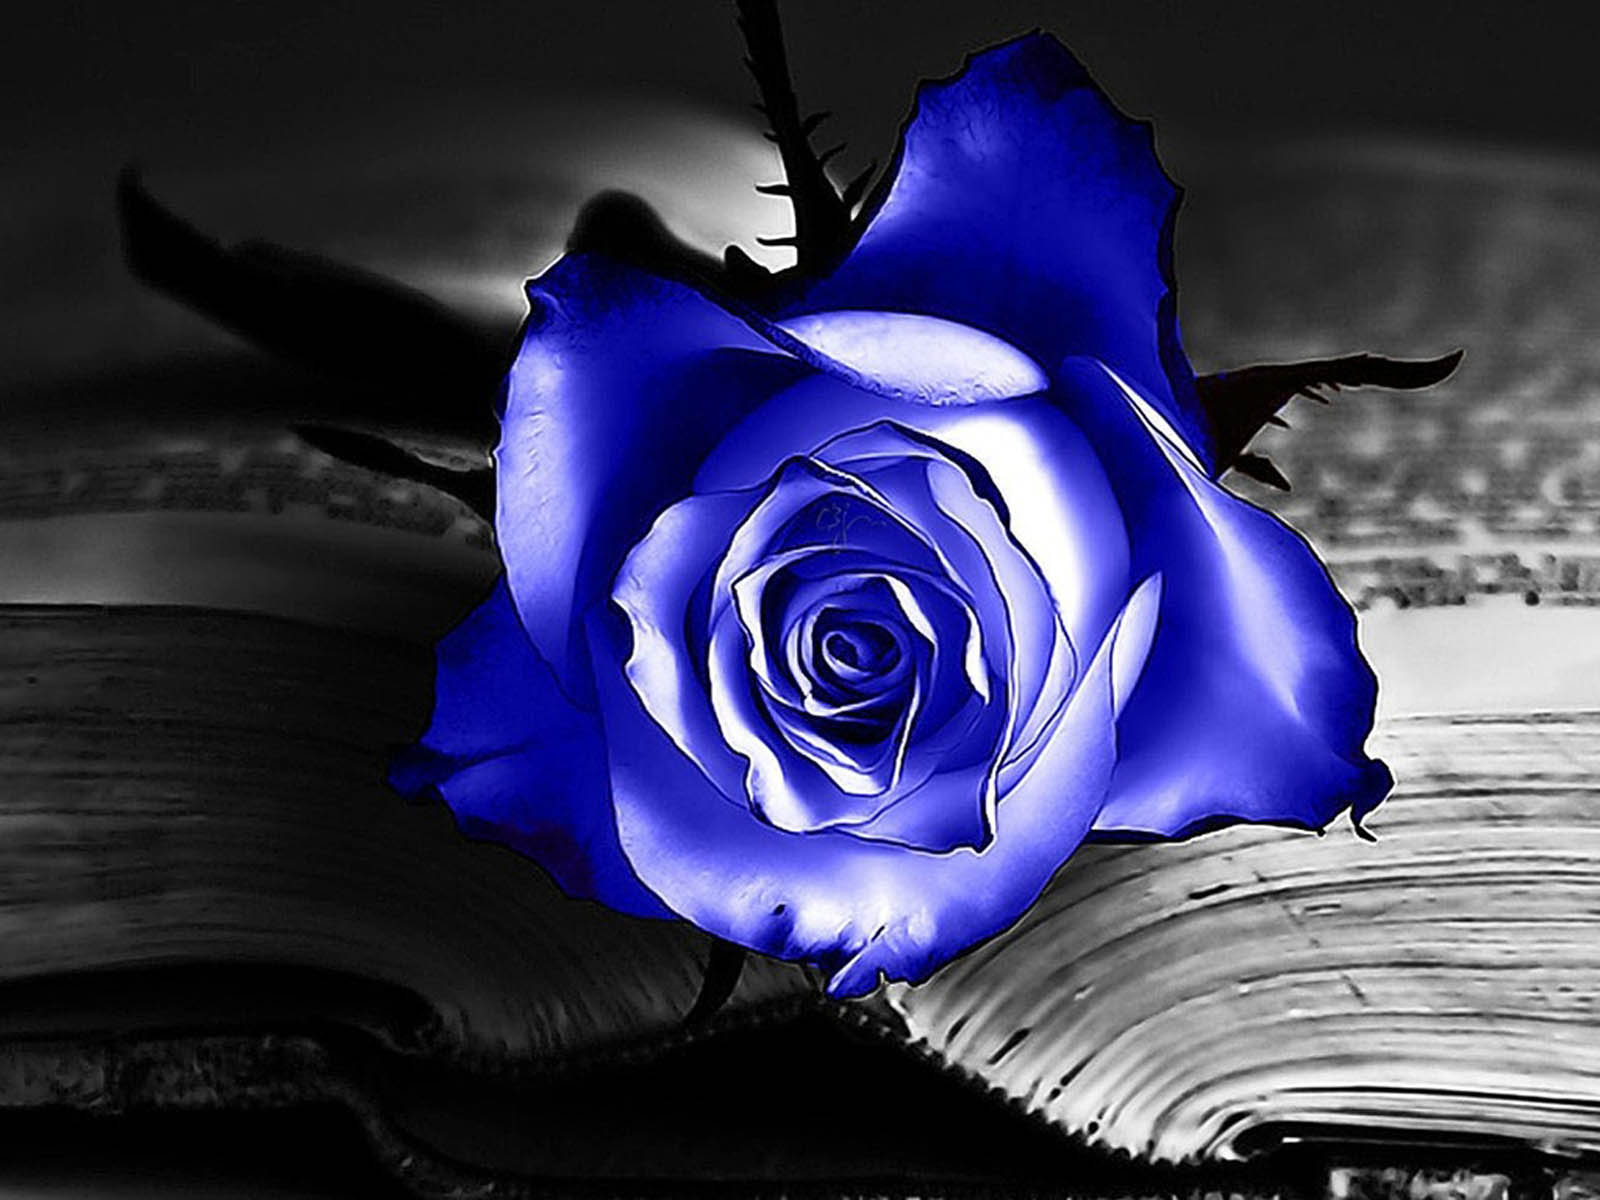 50+] Blue Roses Wallpaper Images on